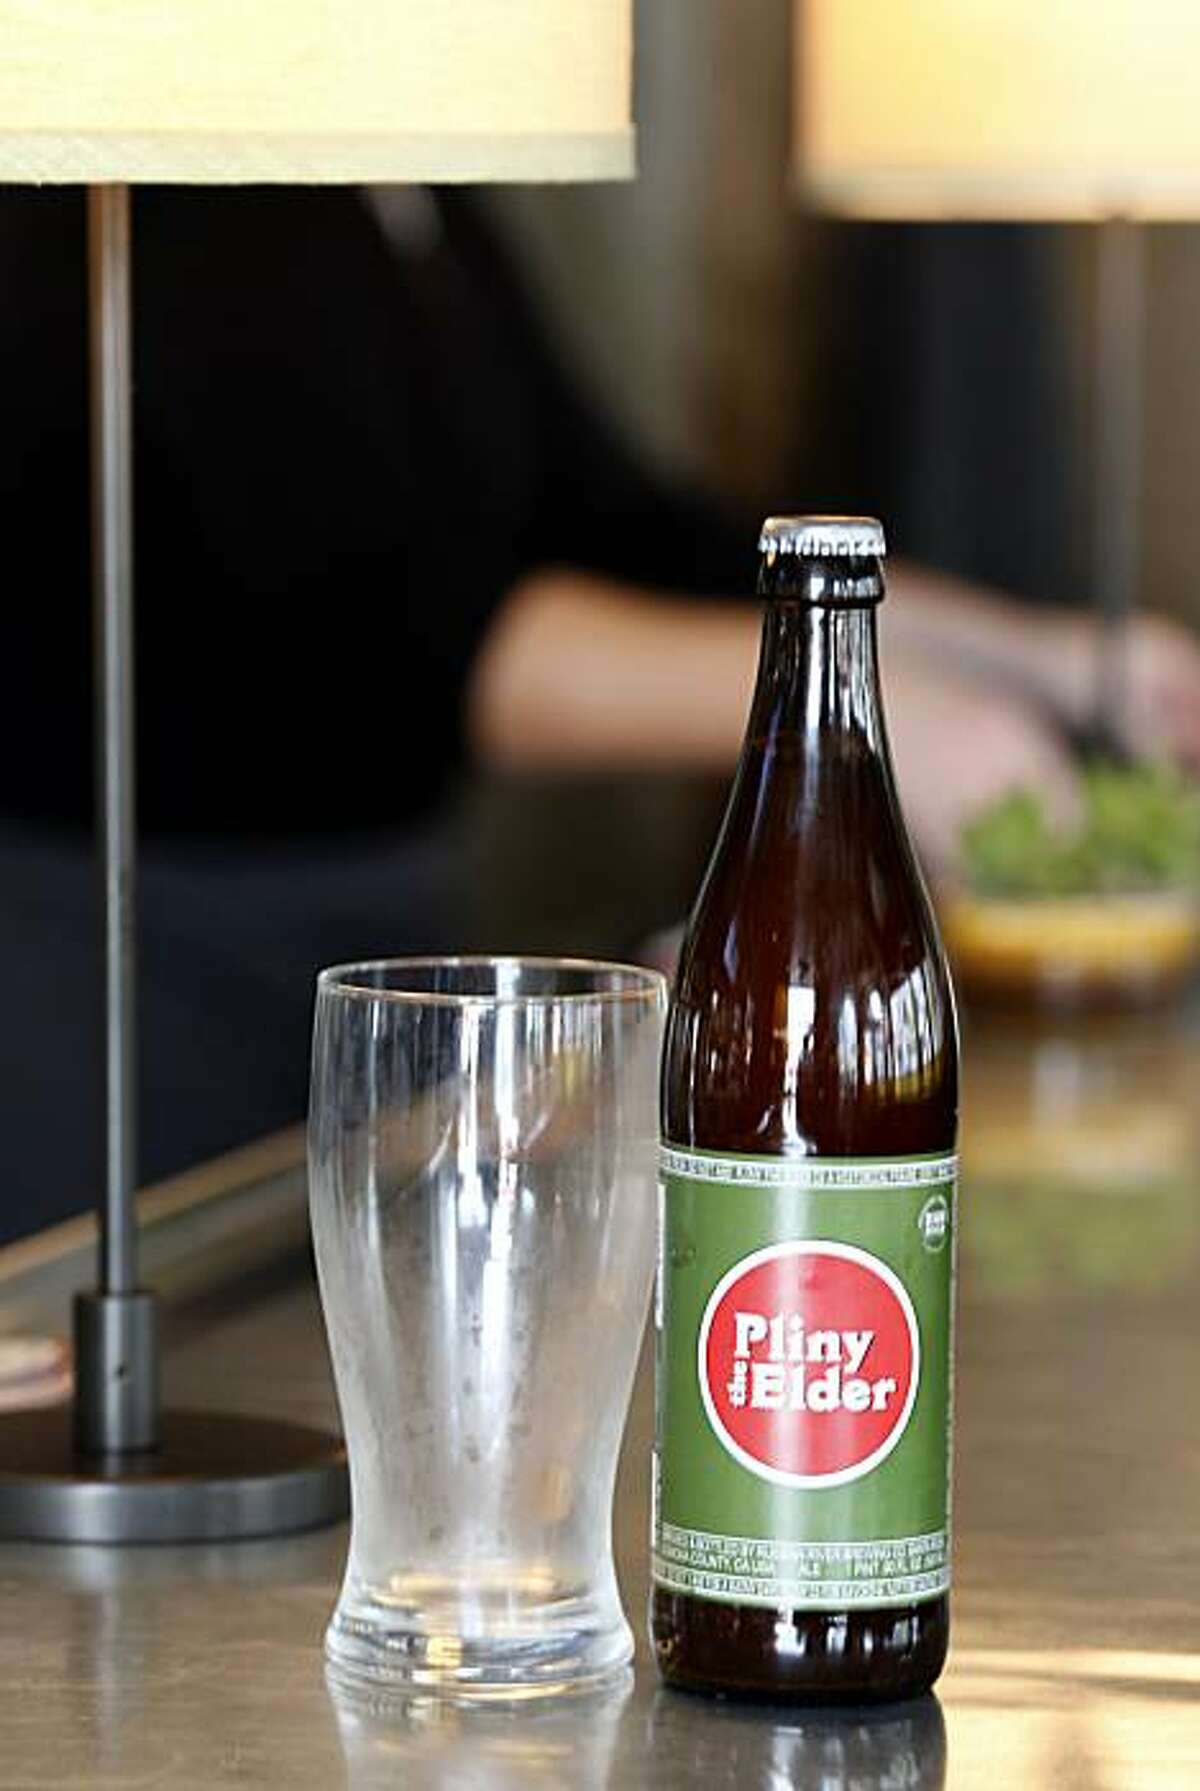 A large assortment of bottled beers including Pliny the Elder from the Russian River Brewing Company is available at Norman Rose Tavern. Norman Rose Tavern in downtown Napa, Calif. is a large restaurant with several bars, including one with large flat-screen televisions.